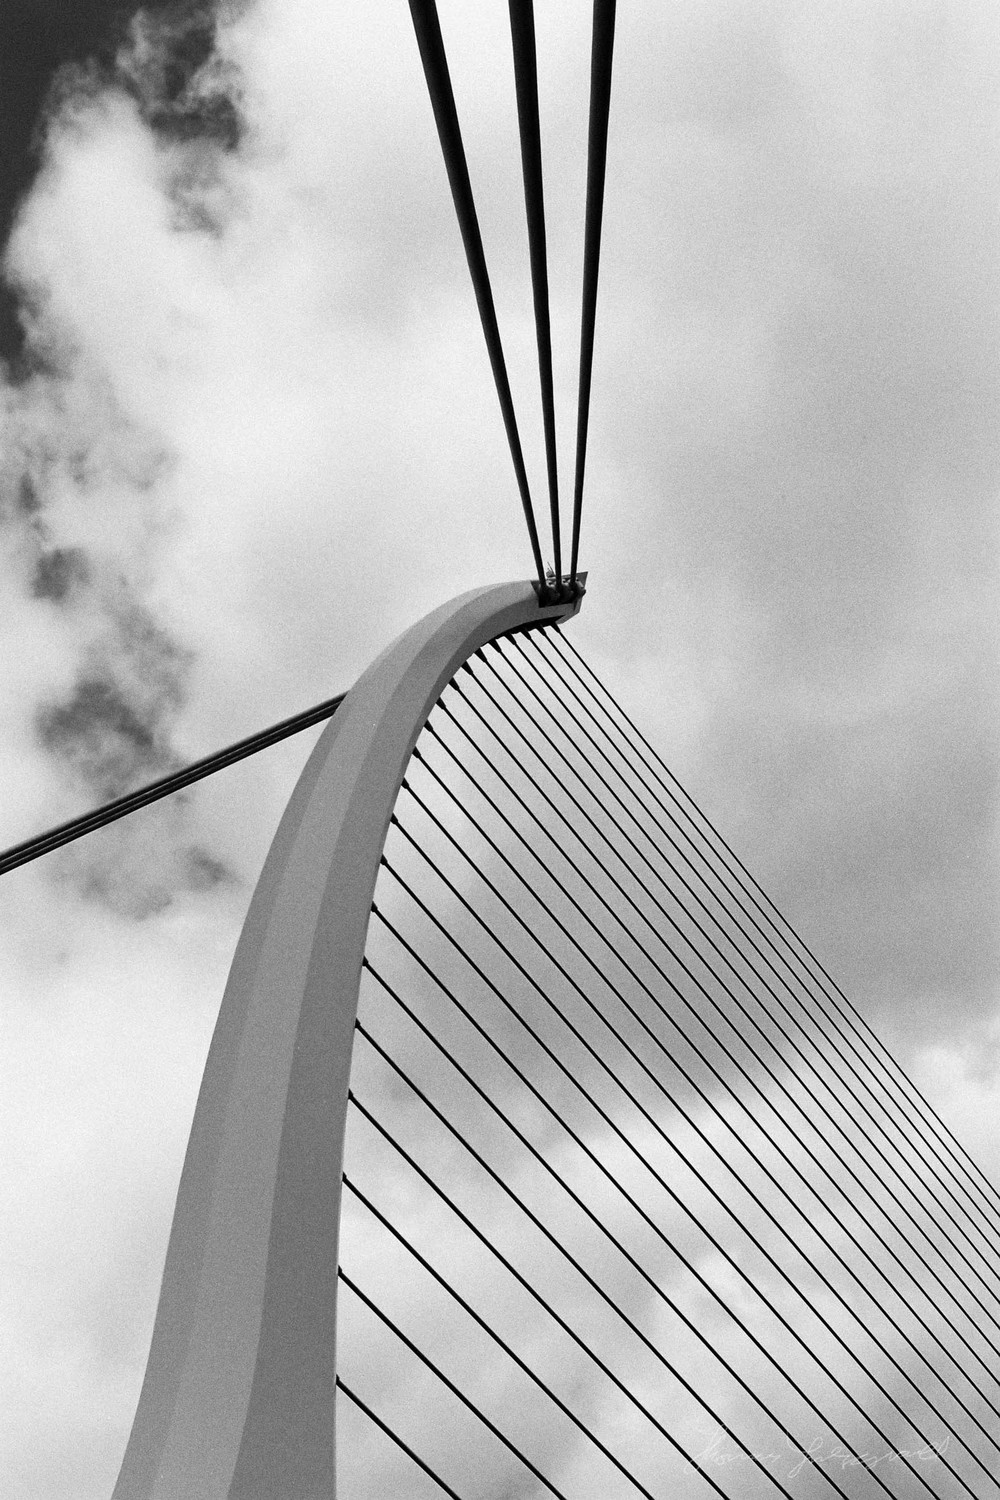 The Suspension cables of the Beckett Bridge